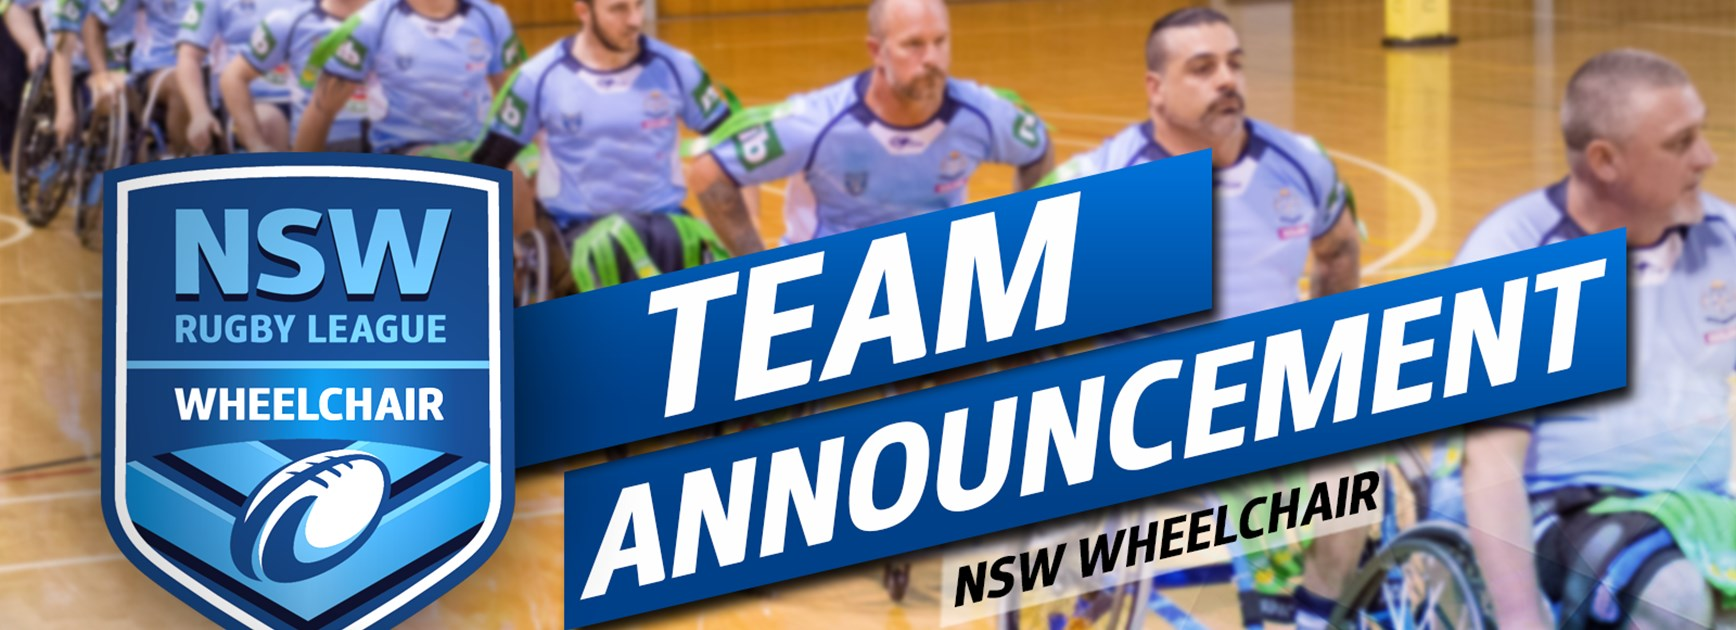 TEAM | NSW Wheelchair Rugby League